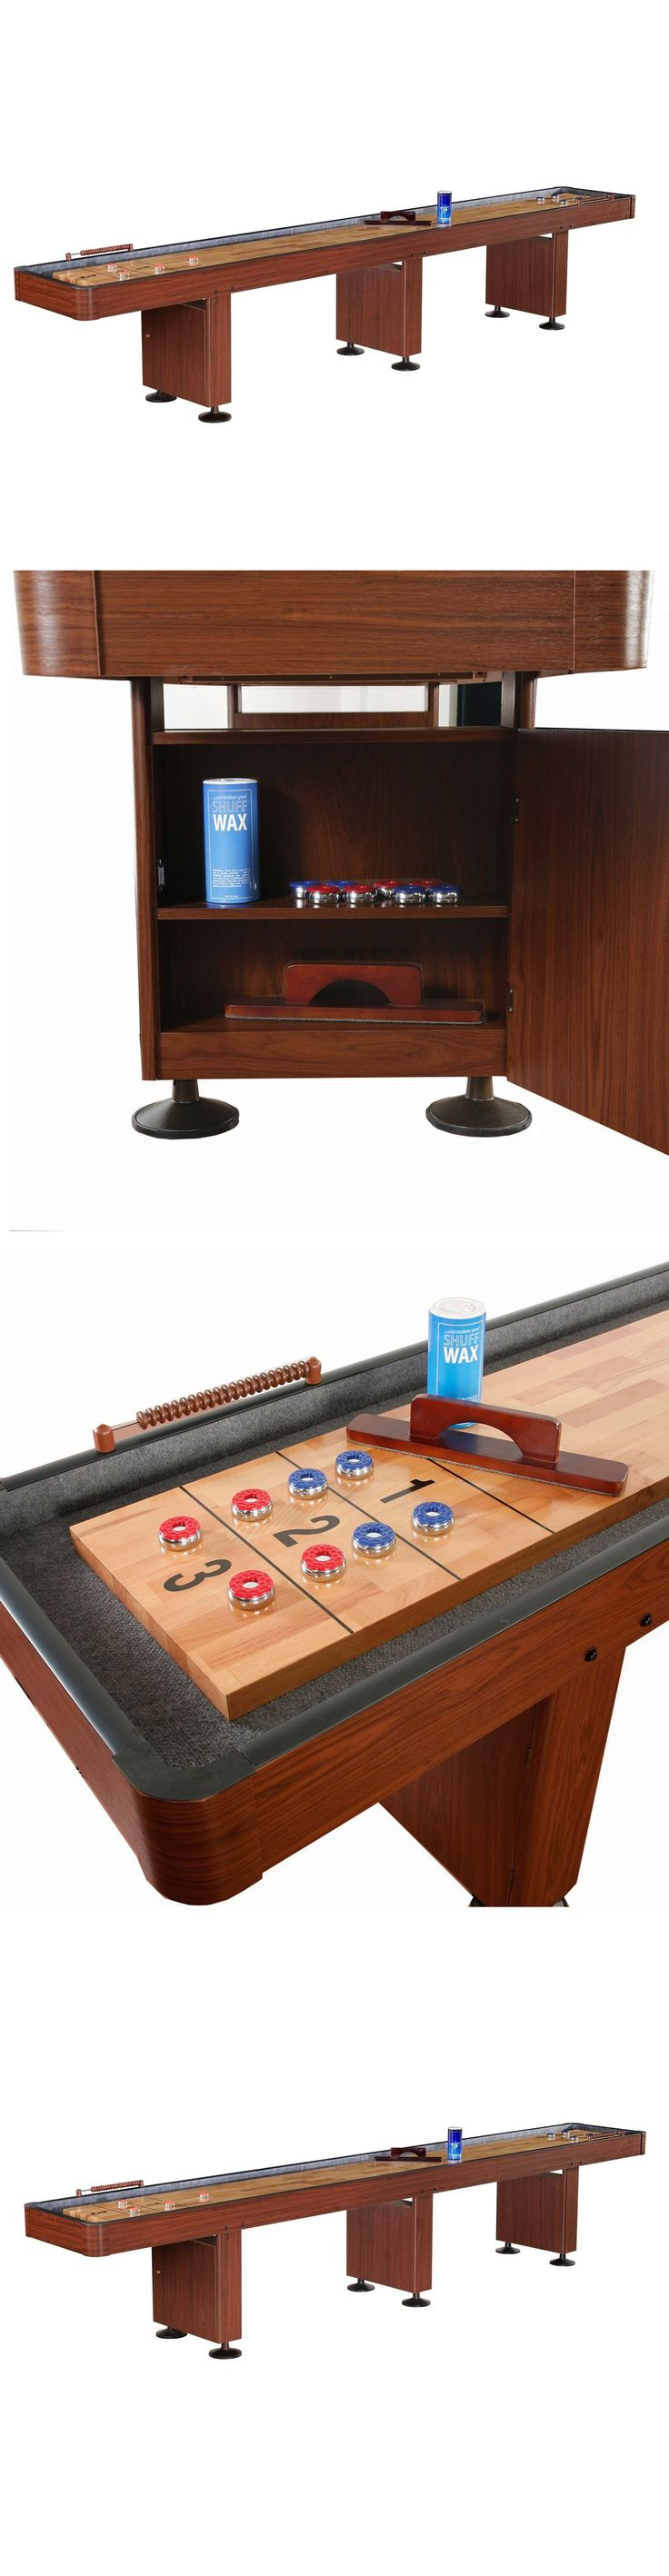 Shuffleboard 79777: Shuffleboard Table Billiard Room 14Ft Bar Table Bowling Recreation Cherry Game -> BUY IT NOW ONLY: $1753.29 on eBay!